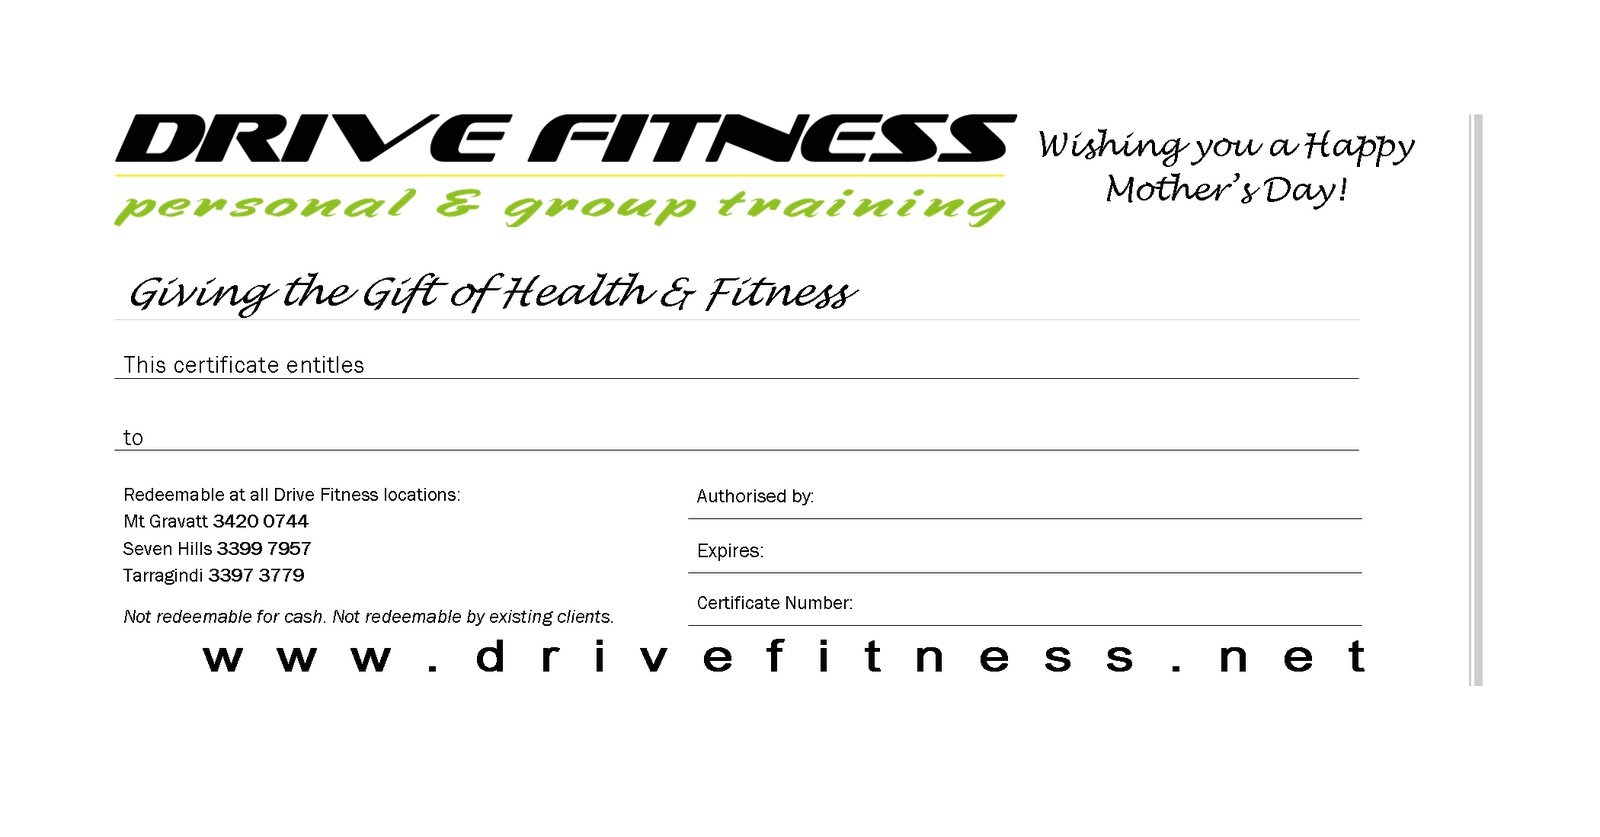 mothers day gift certificates available